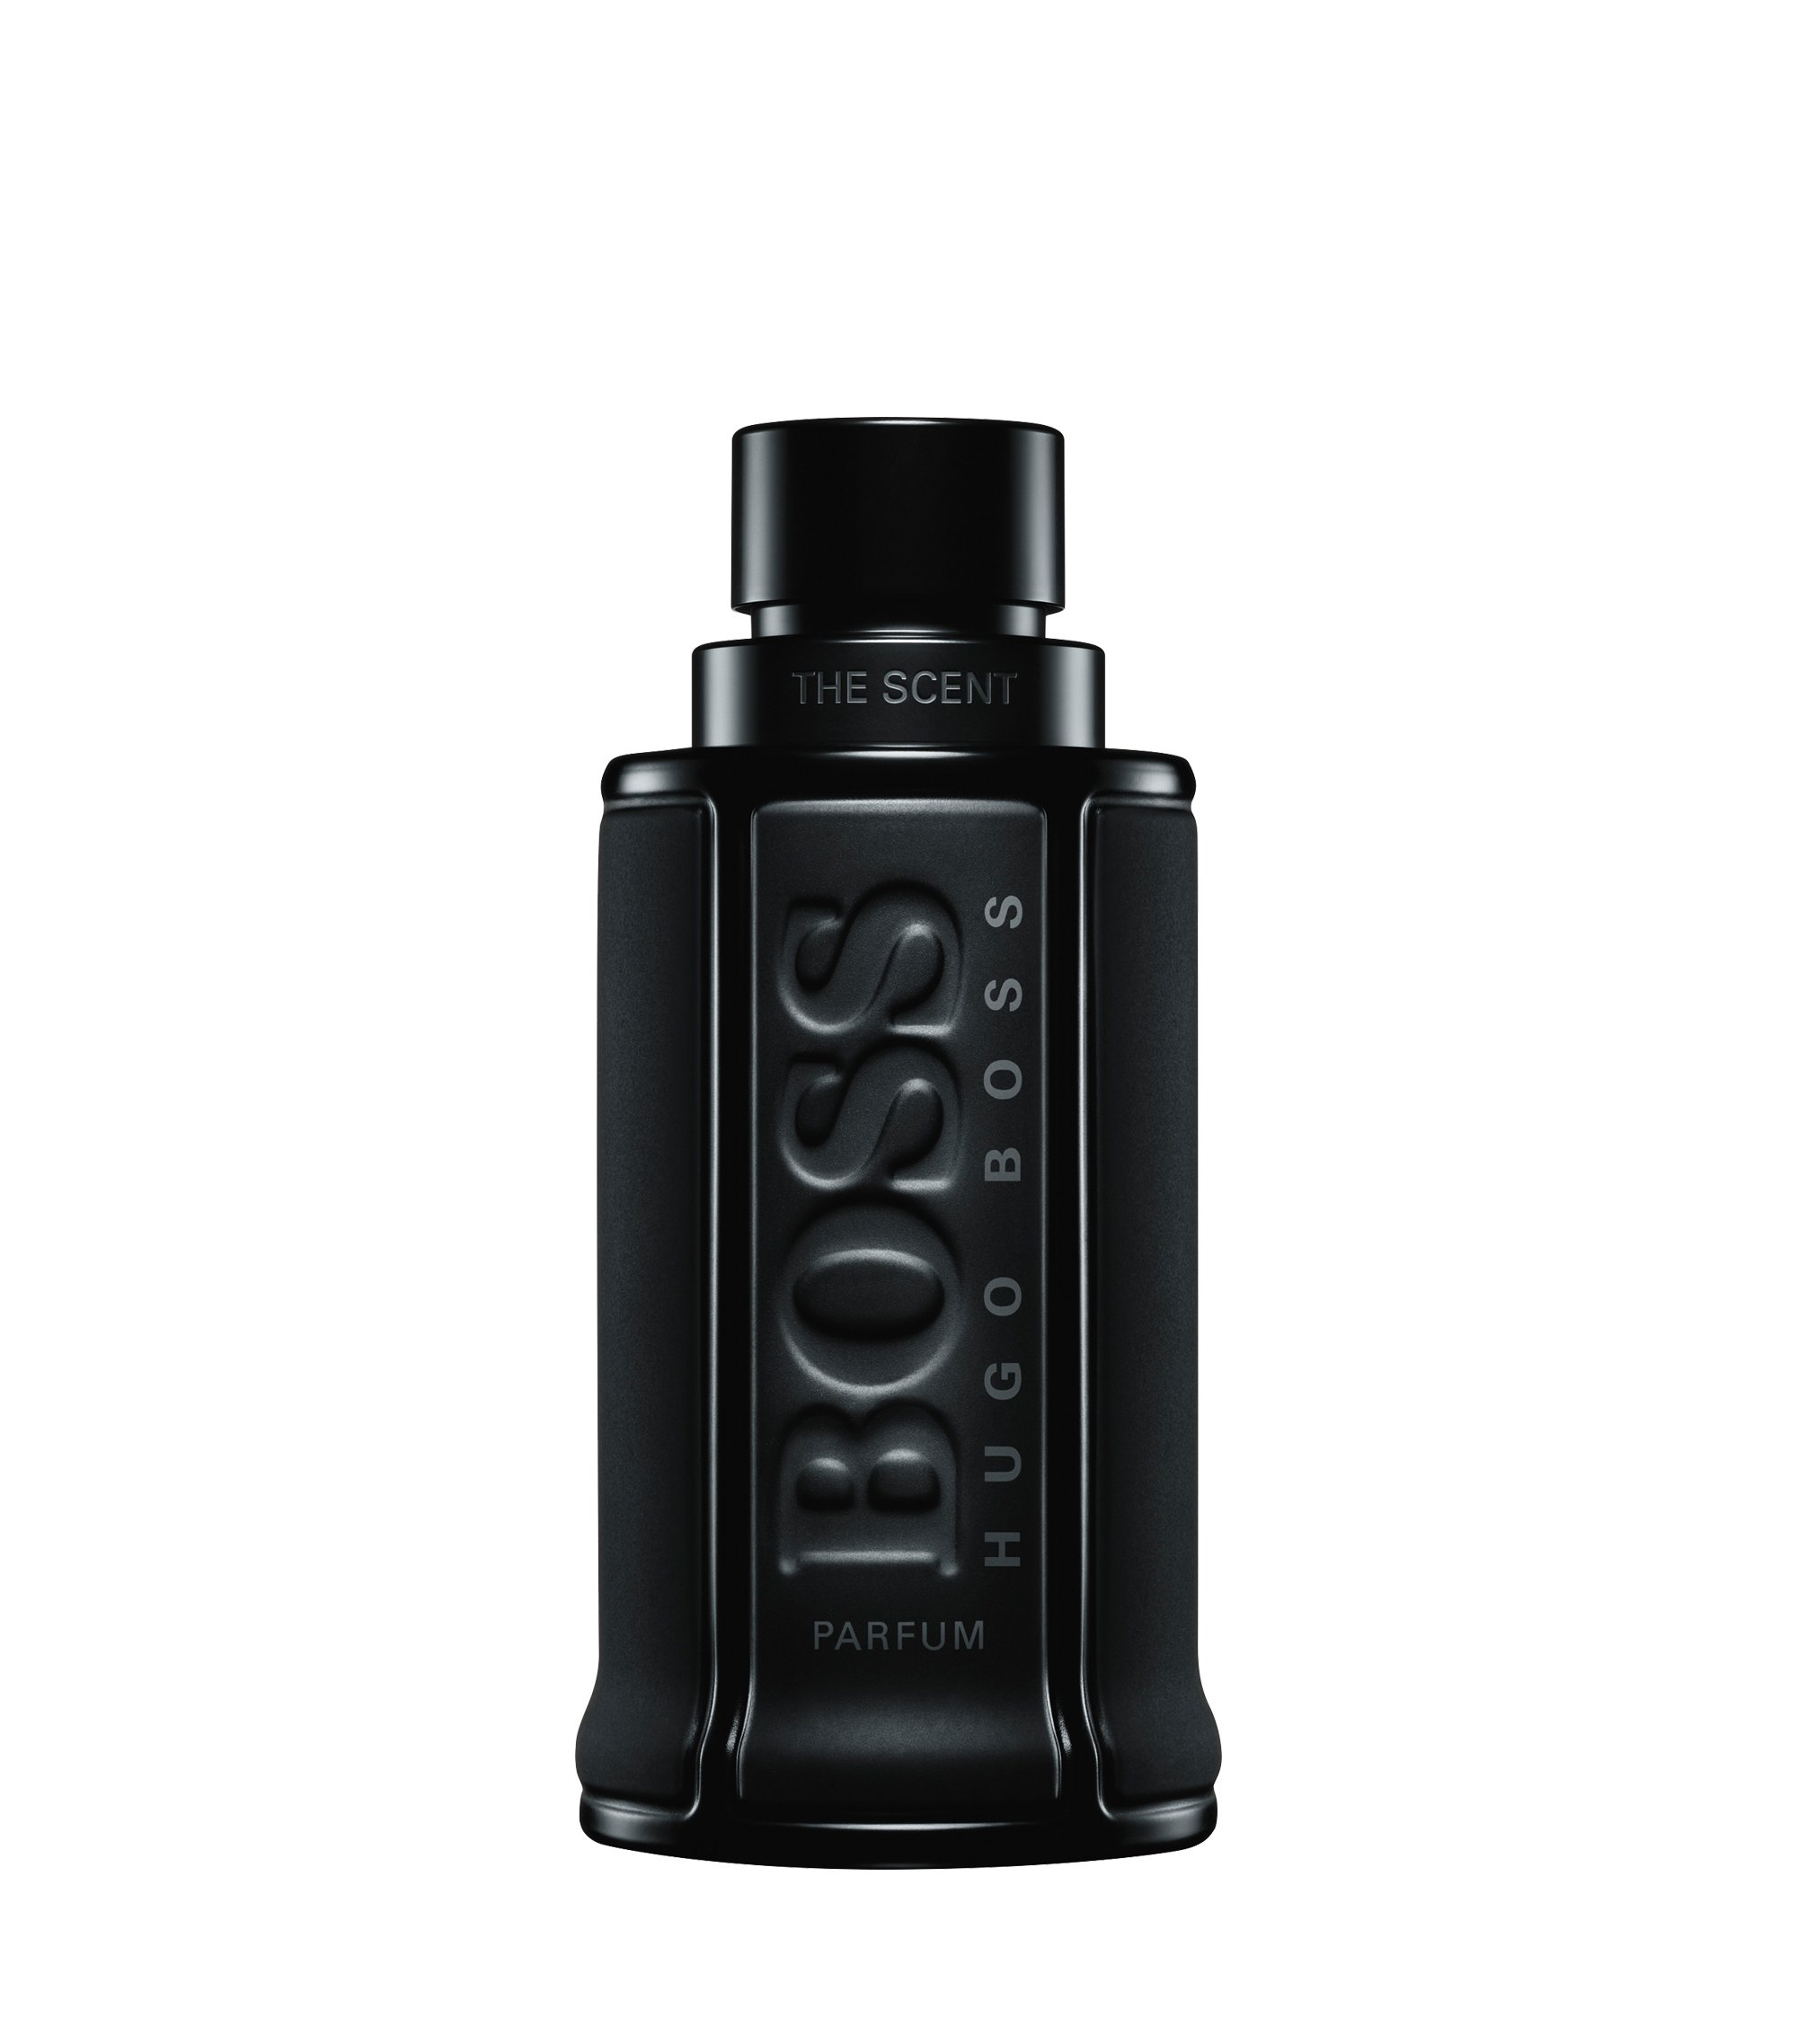 Eau de parfum BOSS The Scent for Him, 100 ml, Assorted-Pre-Pack